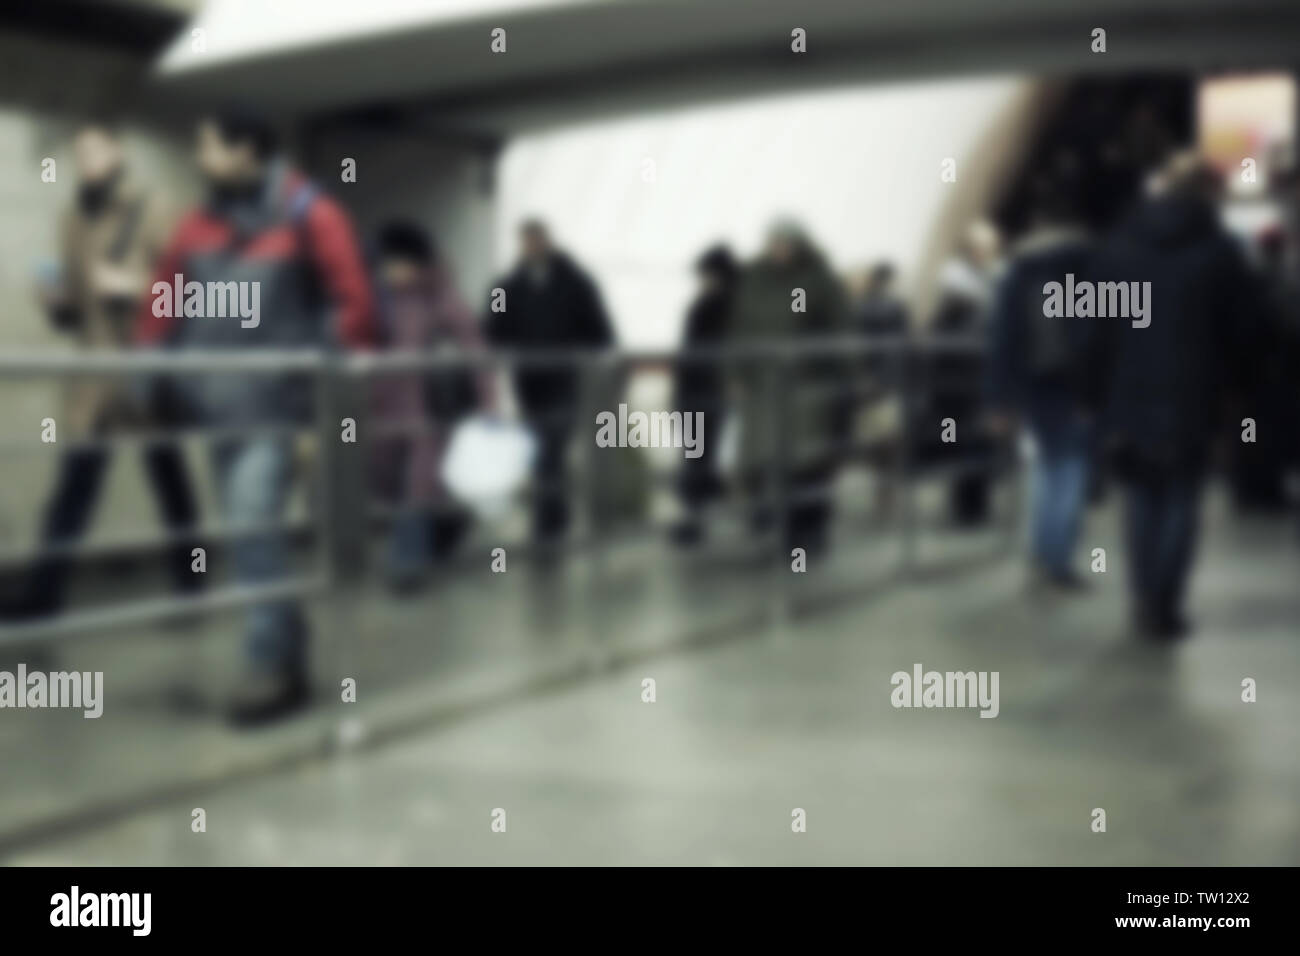 Blurred abstract background of people traffic in underground passage - Stock Image